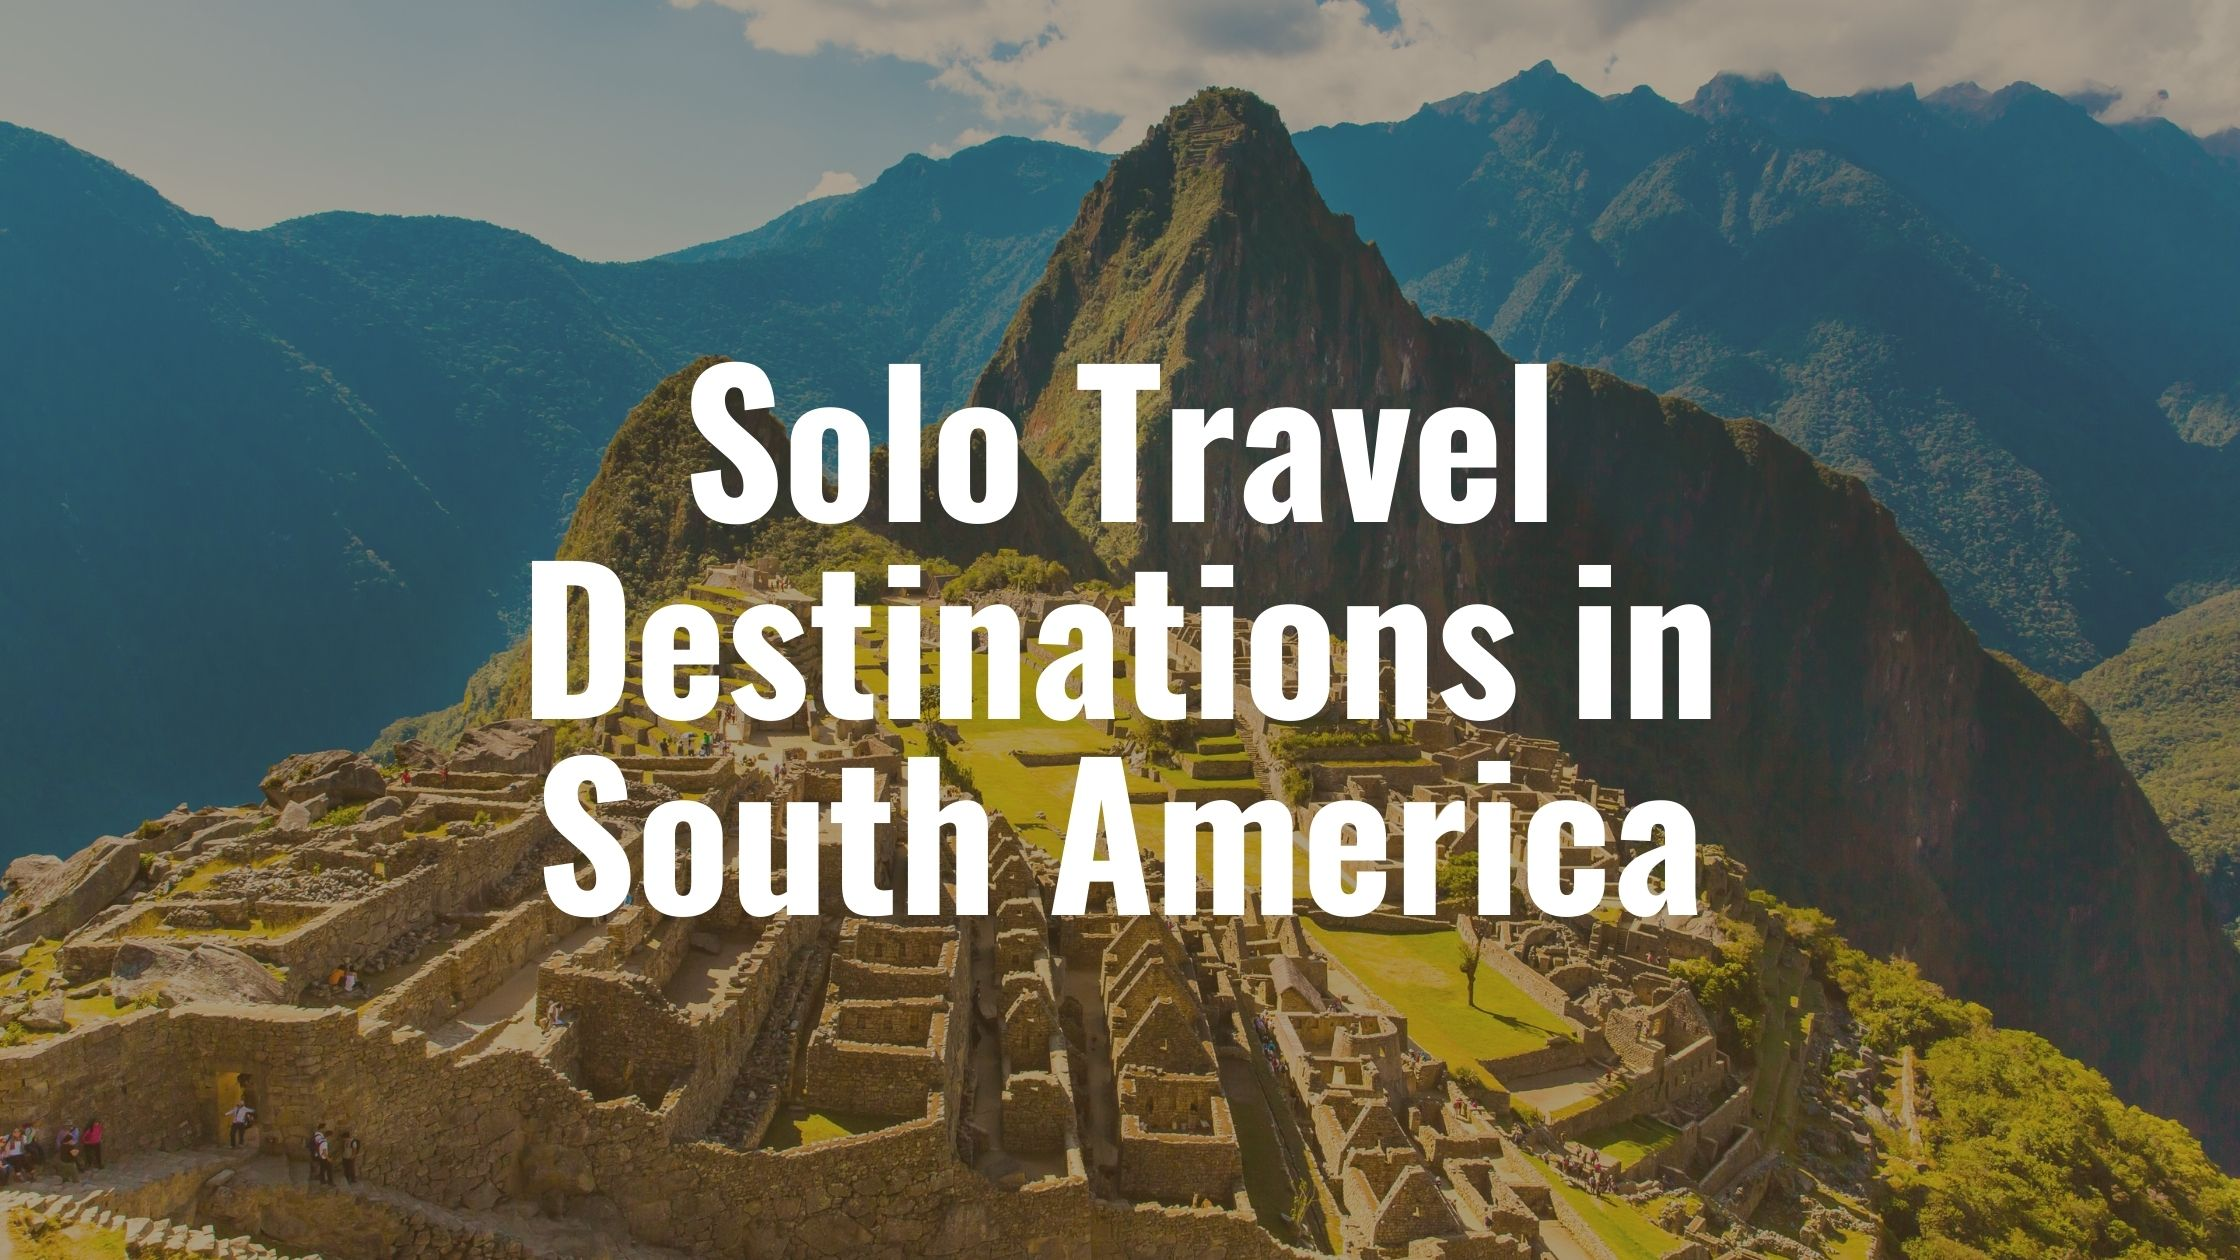 Solo Travel Destinations in South America